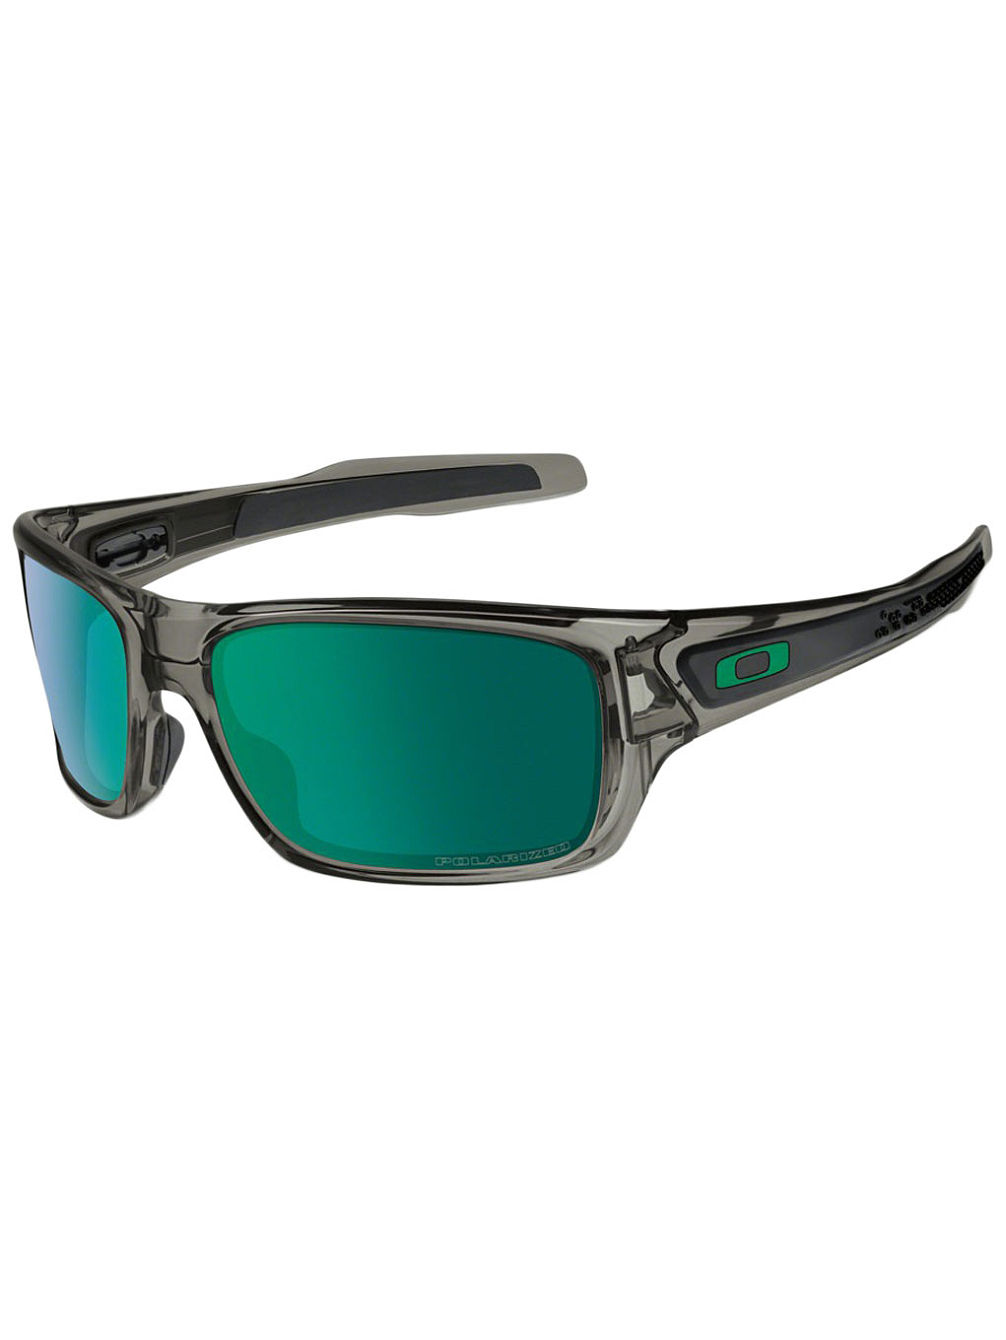 4b6a7aa8b8 Oakley Turbine Grey Smoke Jade Iridium Polarized - Bitterroot Public ...